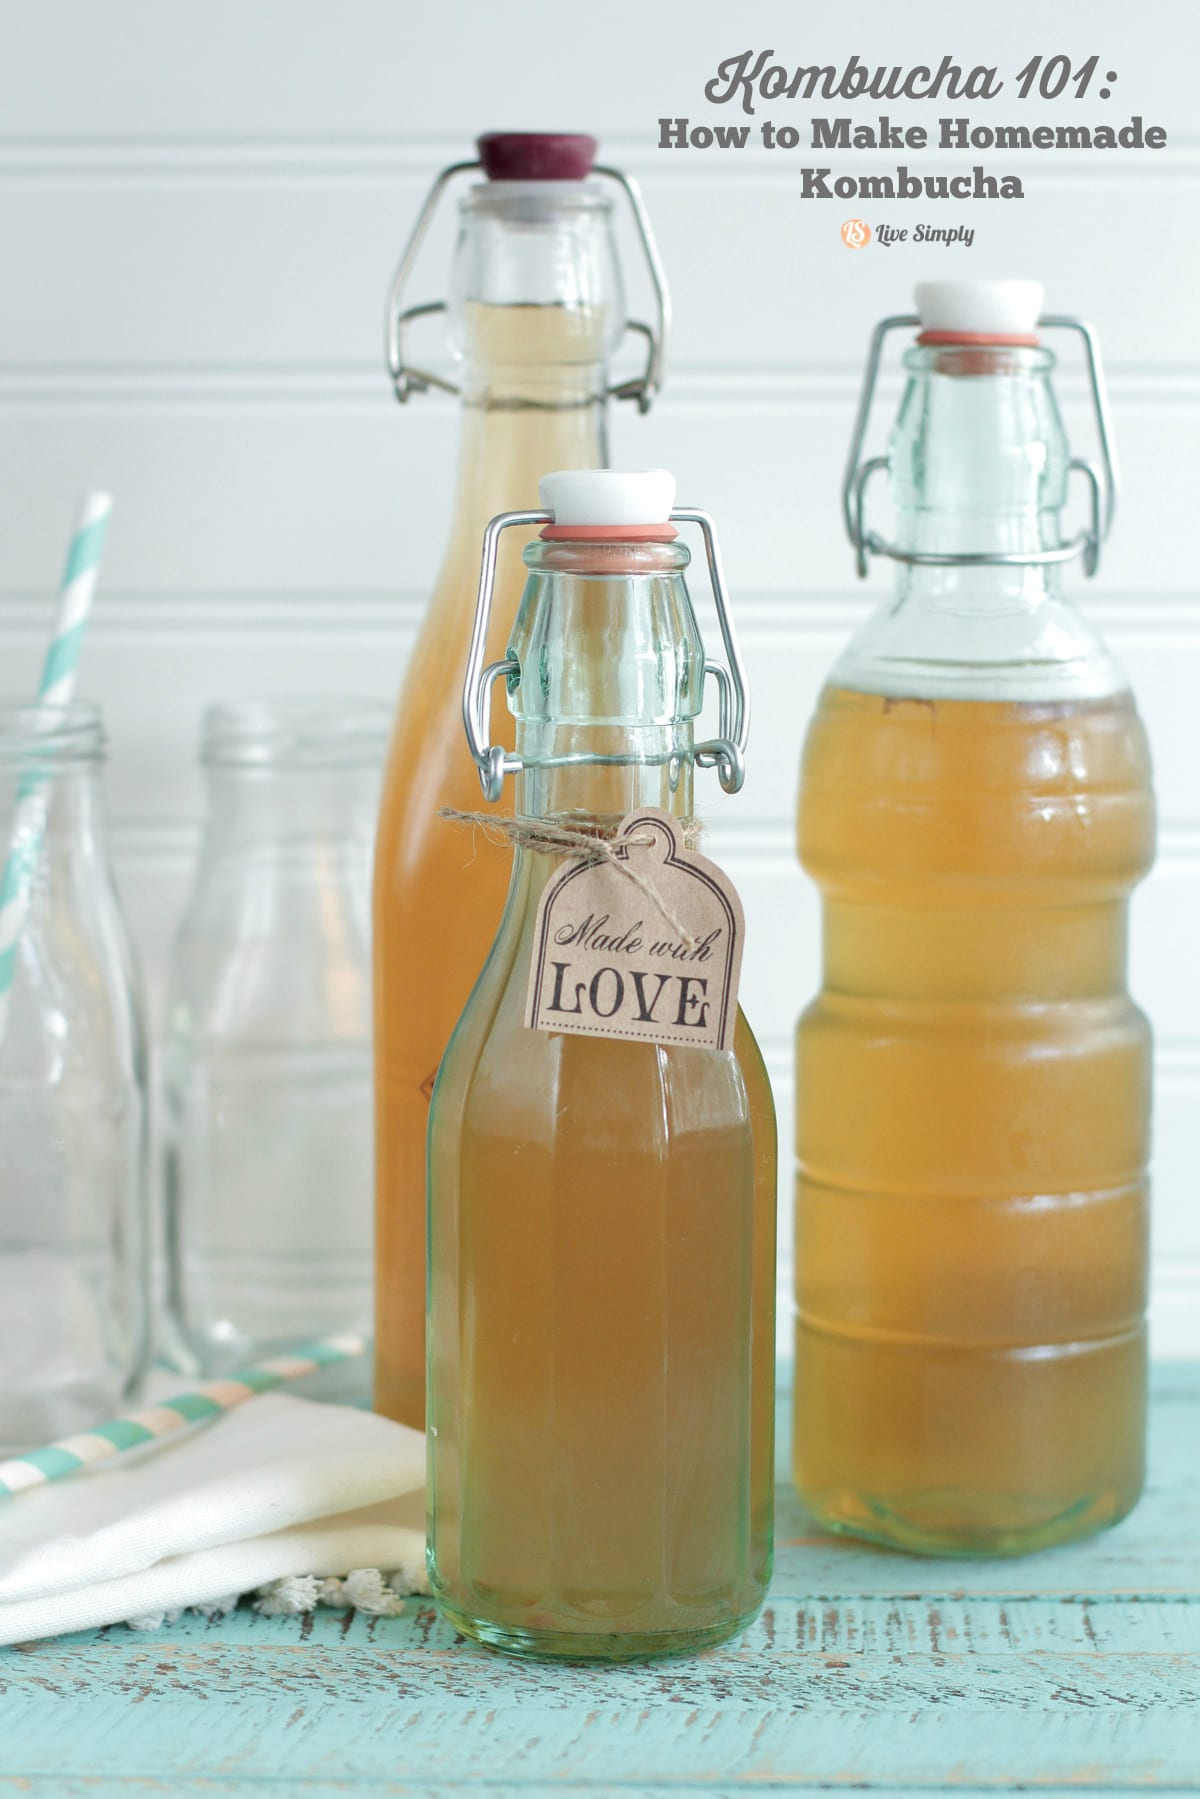 Make this healthy probiotic drink at home! It's so easy!! Homemade Kombucha 101